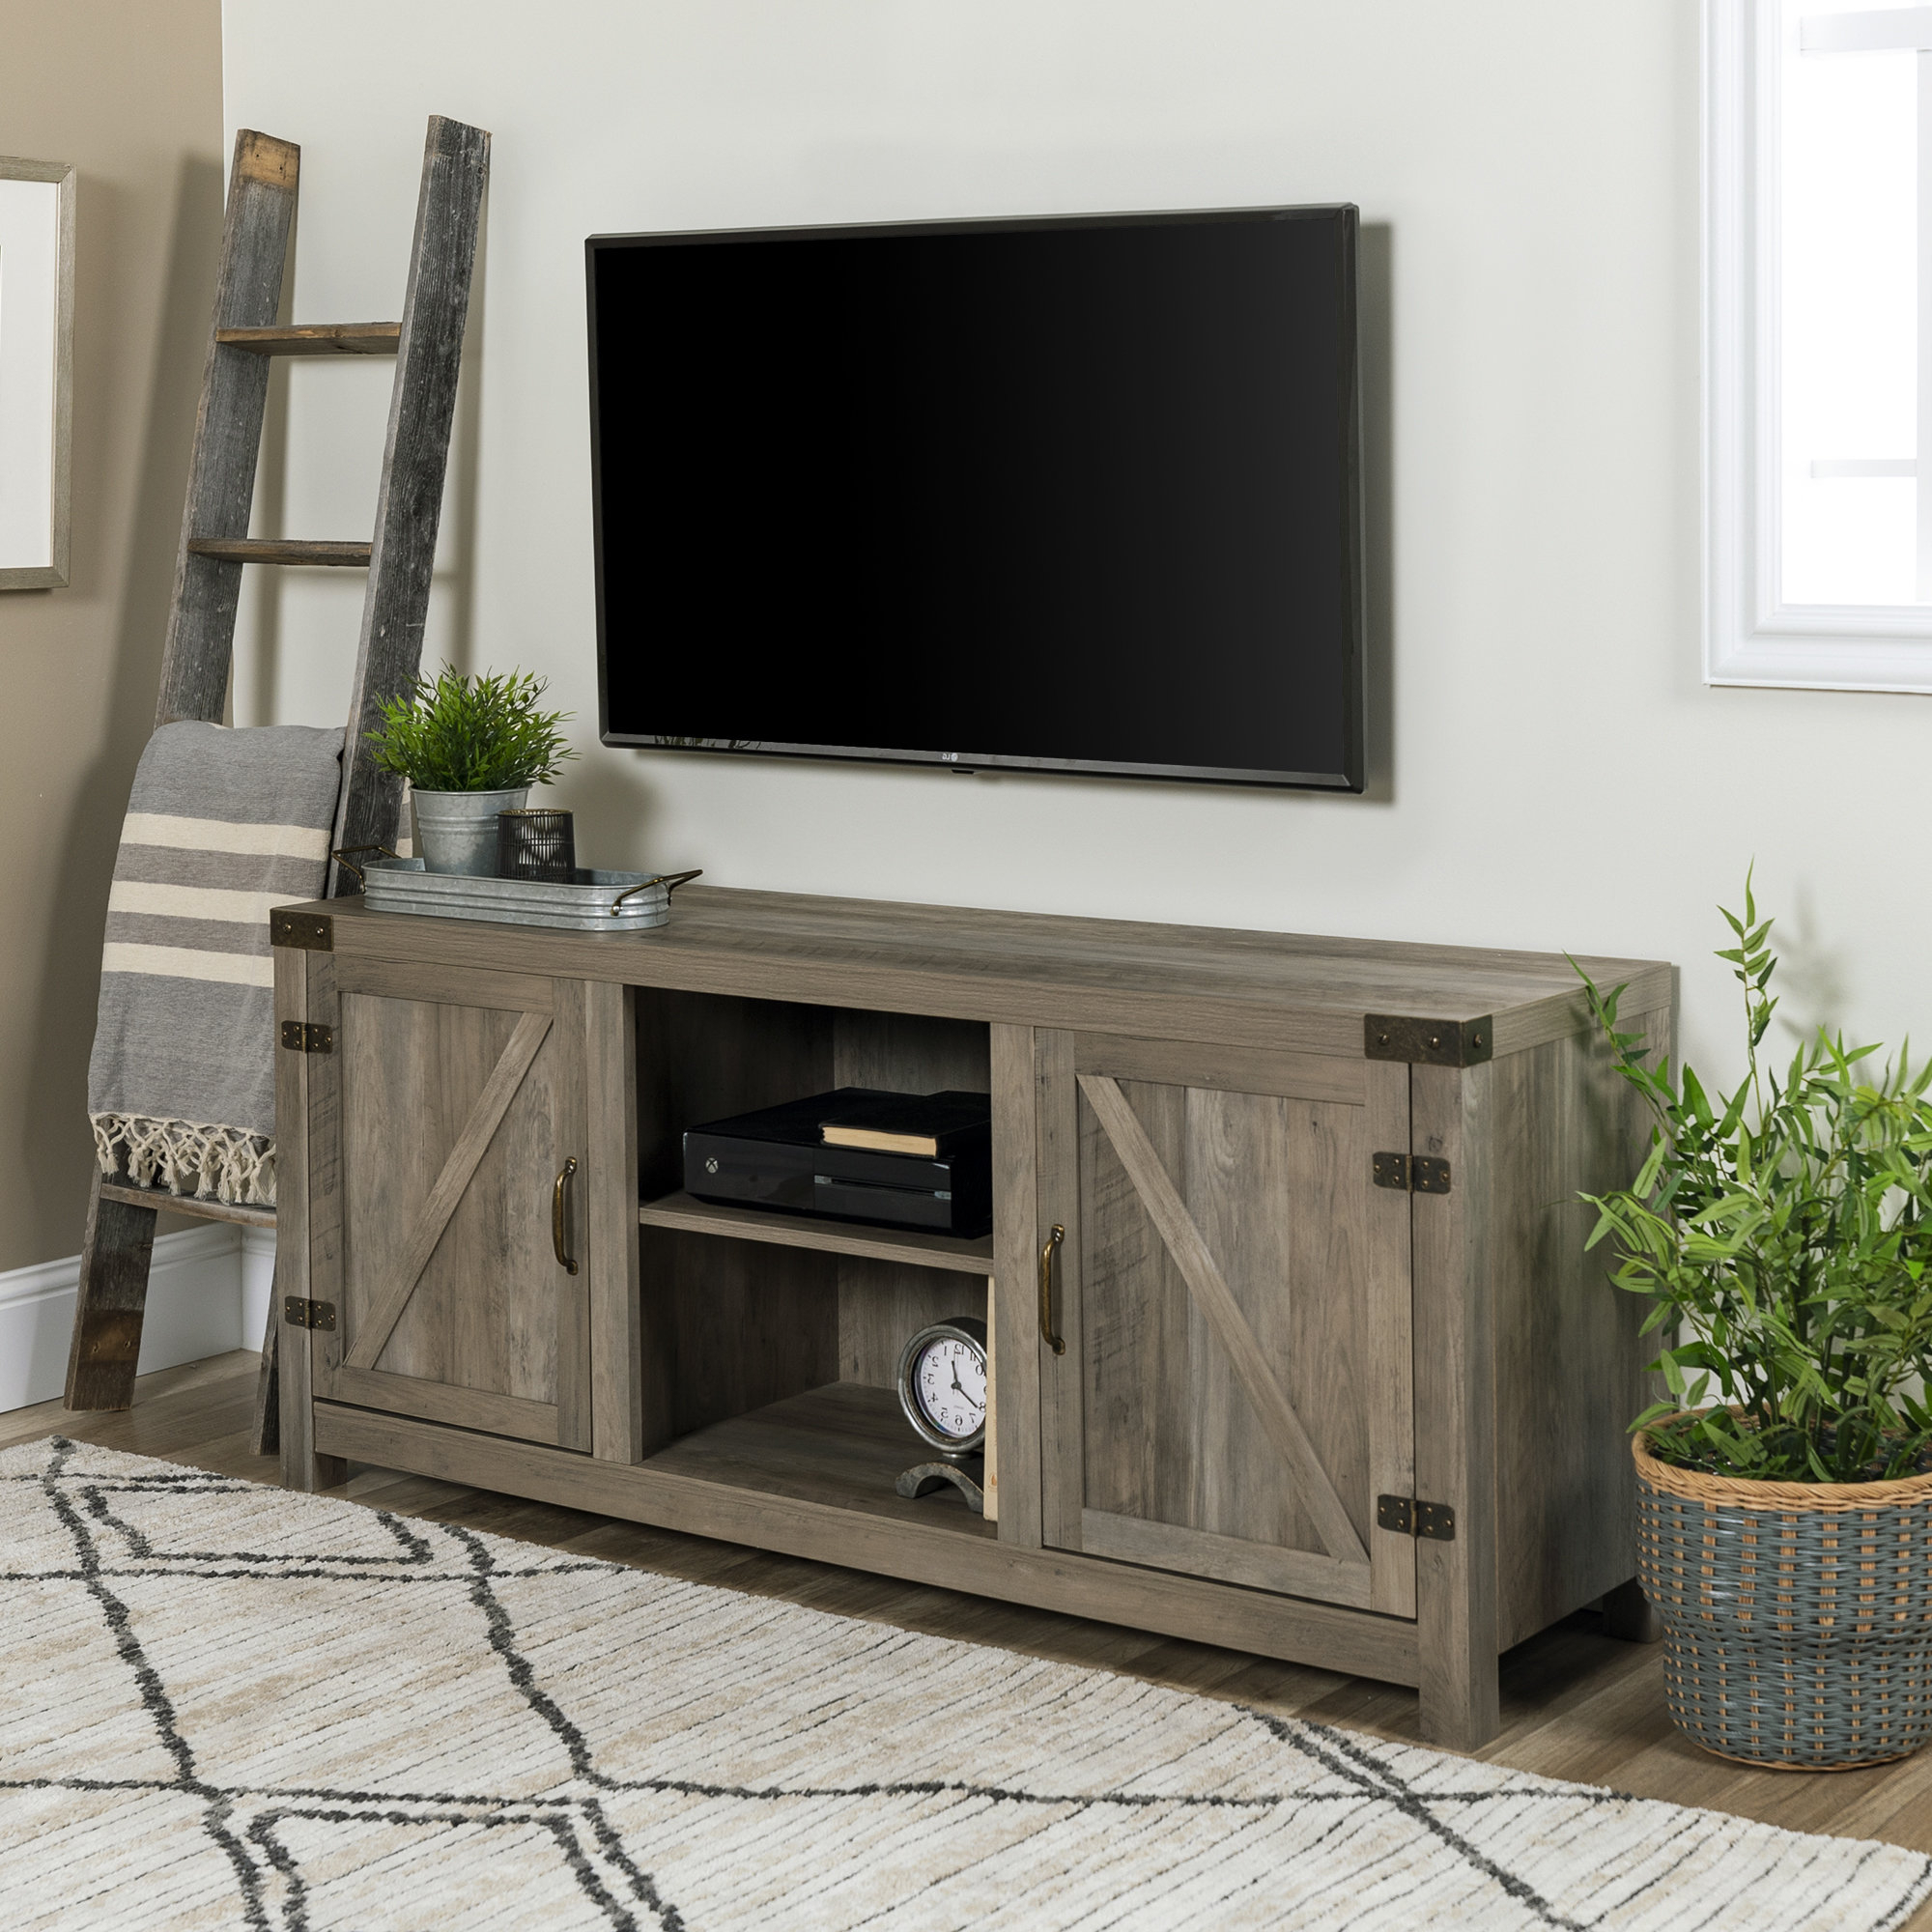 72 Inch Tv Stand | Wayfair Pertaining To Kenzie 60 Inch Open Display Tv Stands (View 3 of 20)